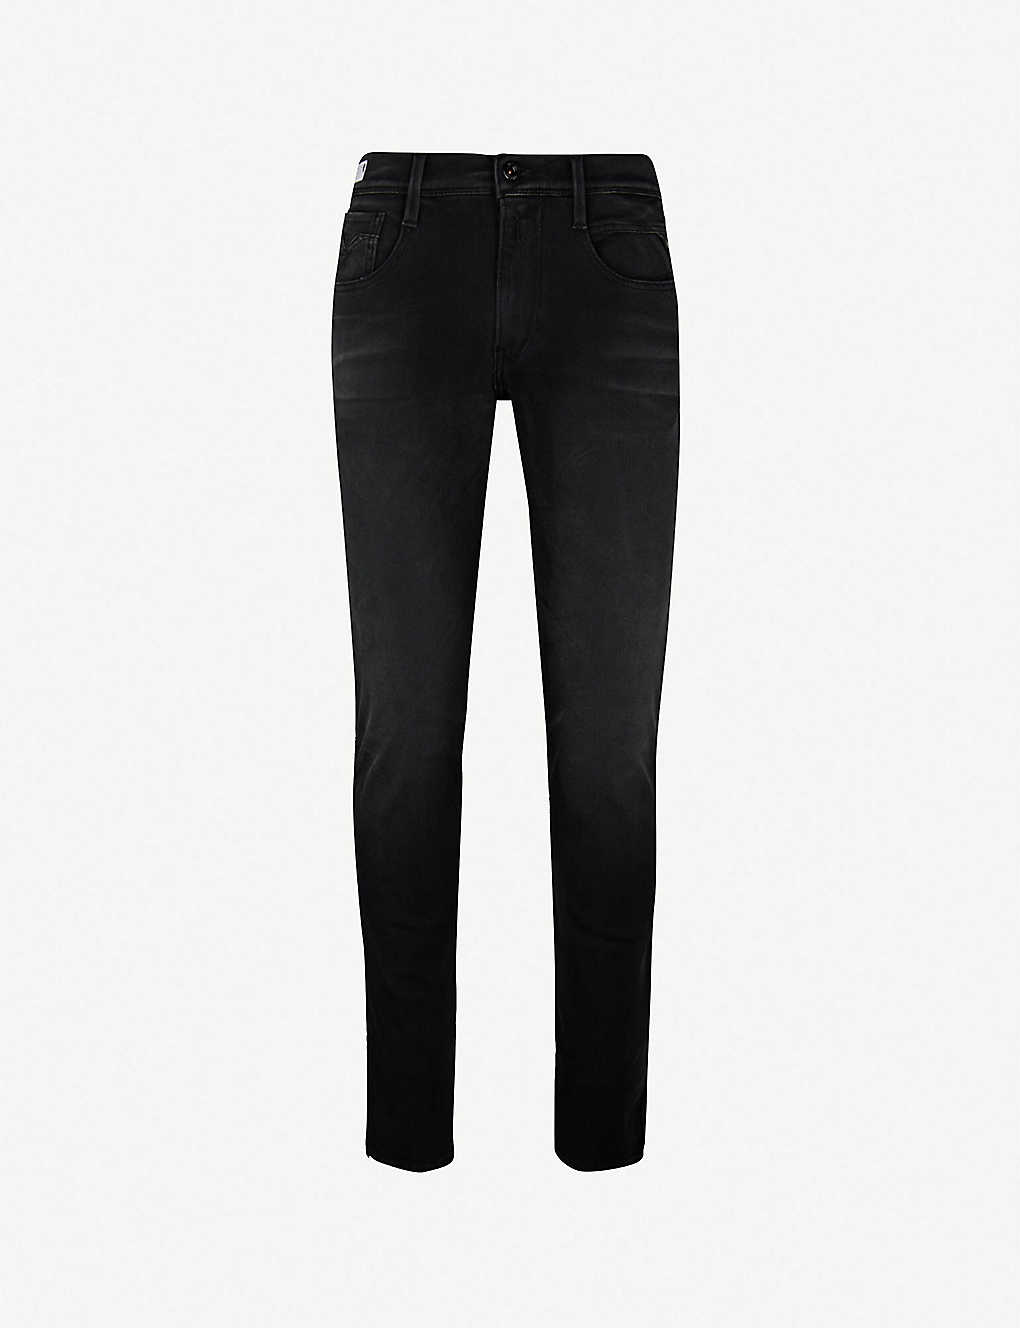 2450abdc195 REPLAY - Anbass hyperflex slim-fit skinny jeans | Selfridges.com